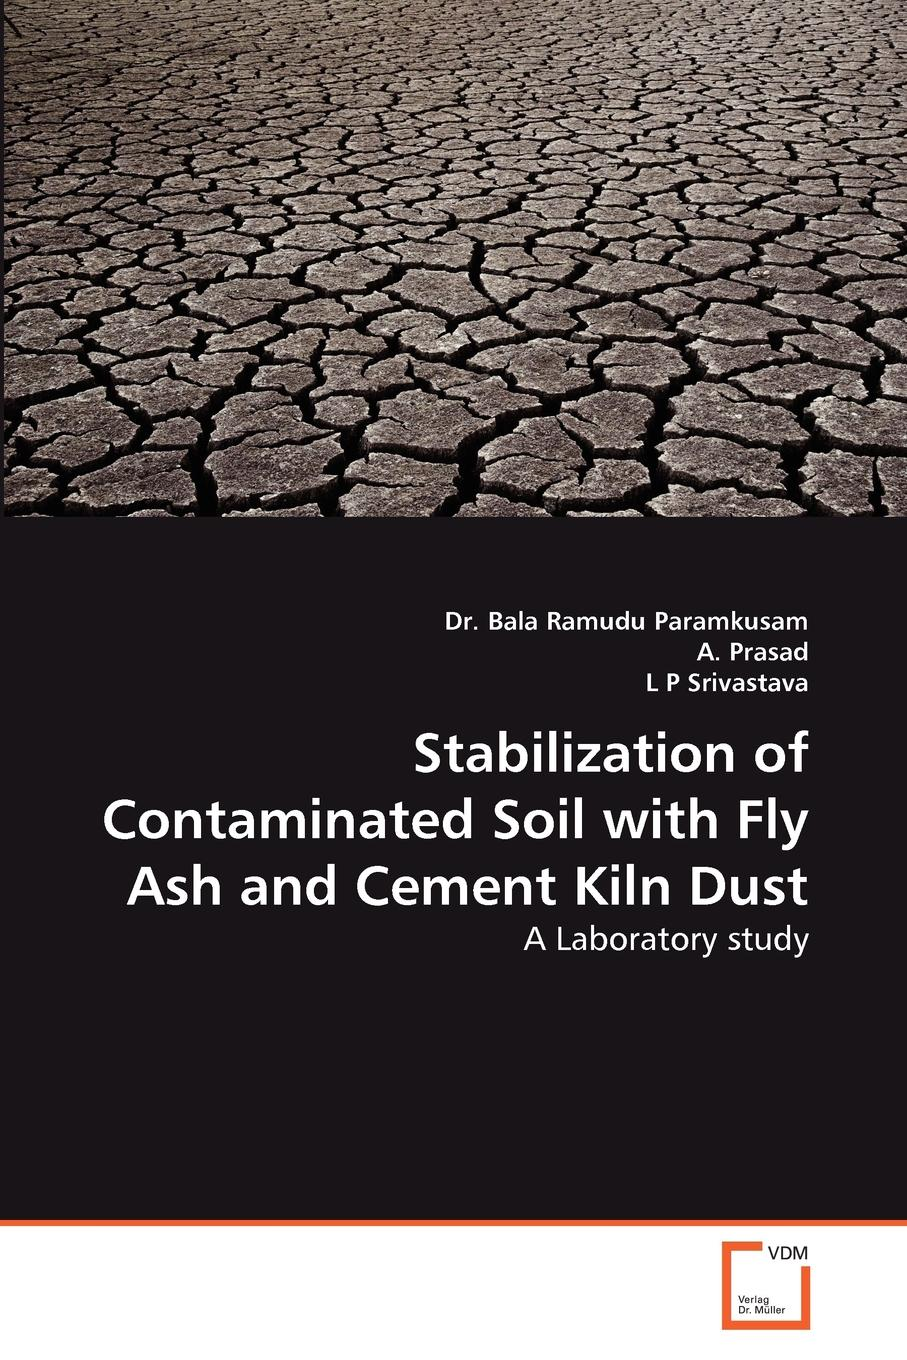 Bala Ramudu Paramkusam, A. Prasad, L. P. Srivastava Stabilization of Contaminated Soil with Fly Ash and Cement Kiln Dust turgenev i virgin soil